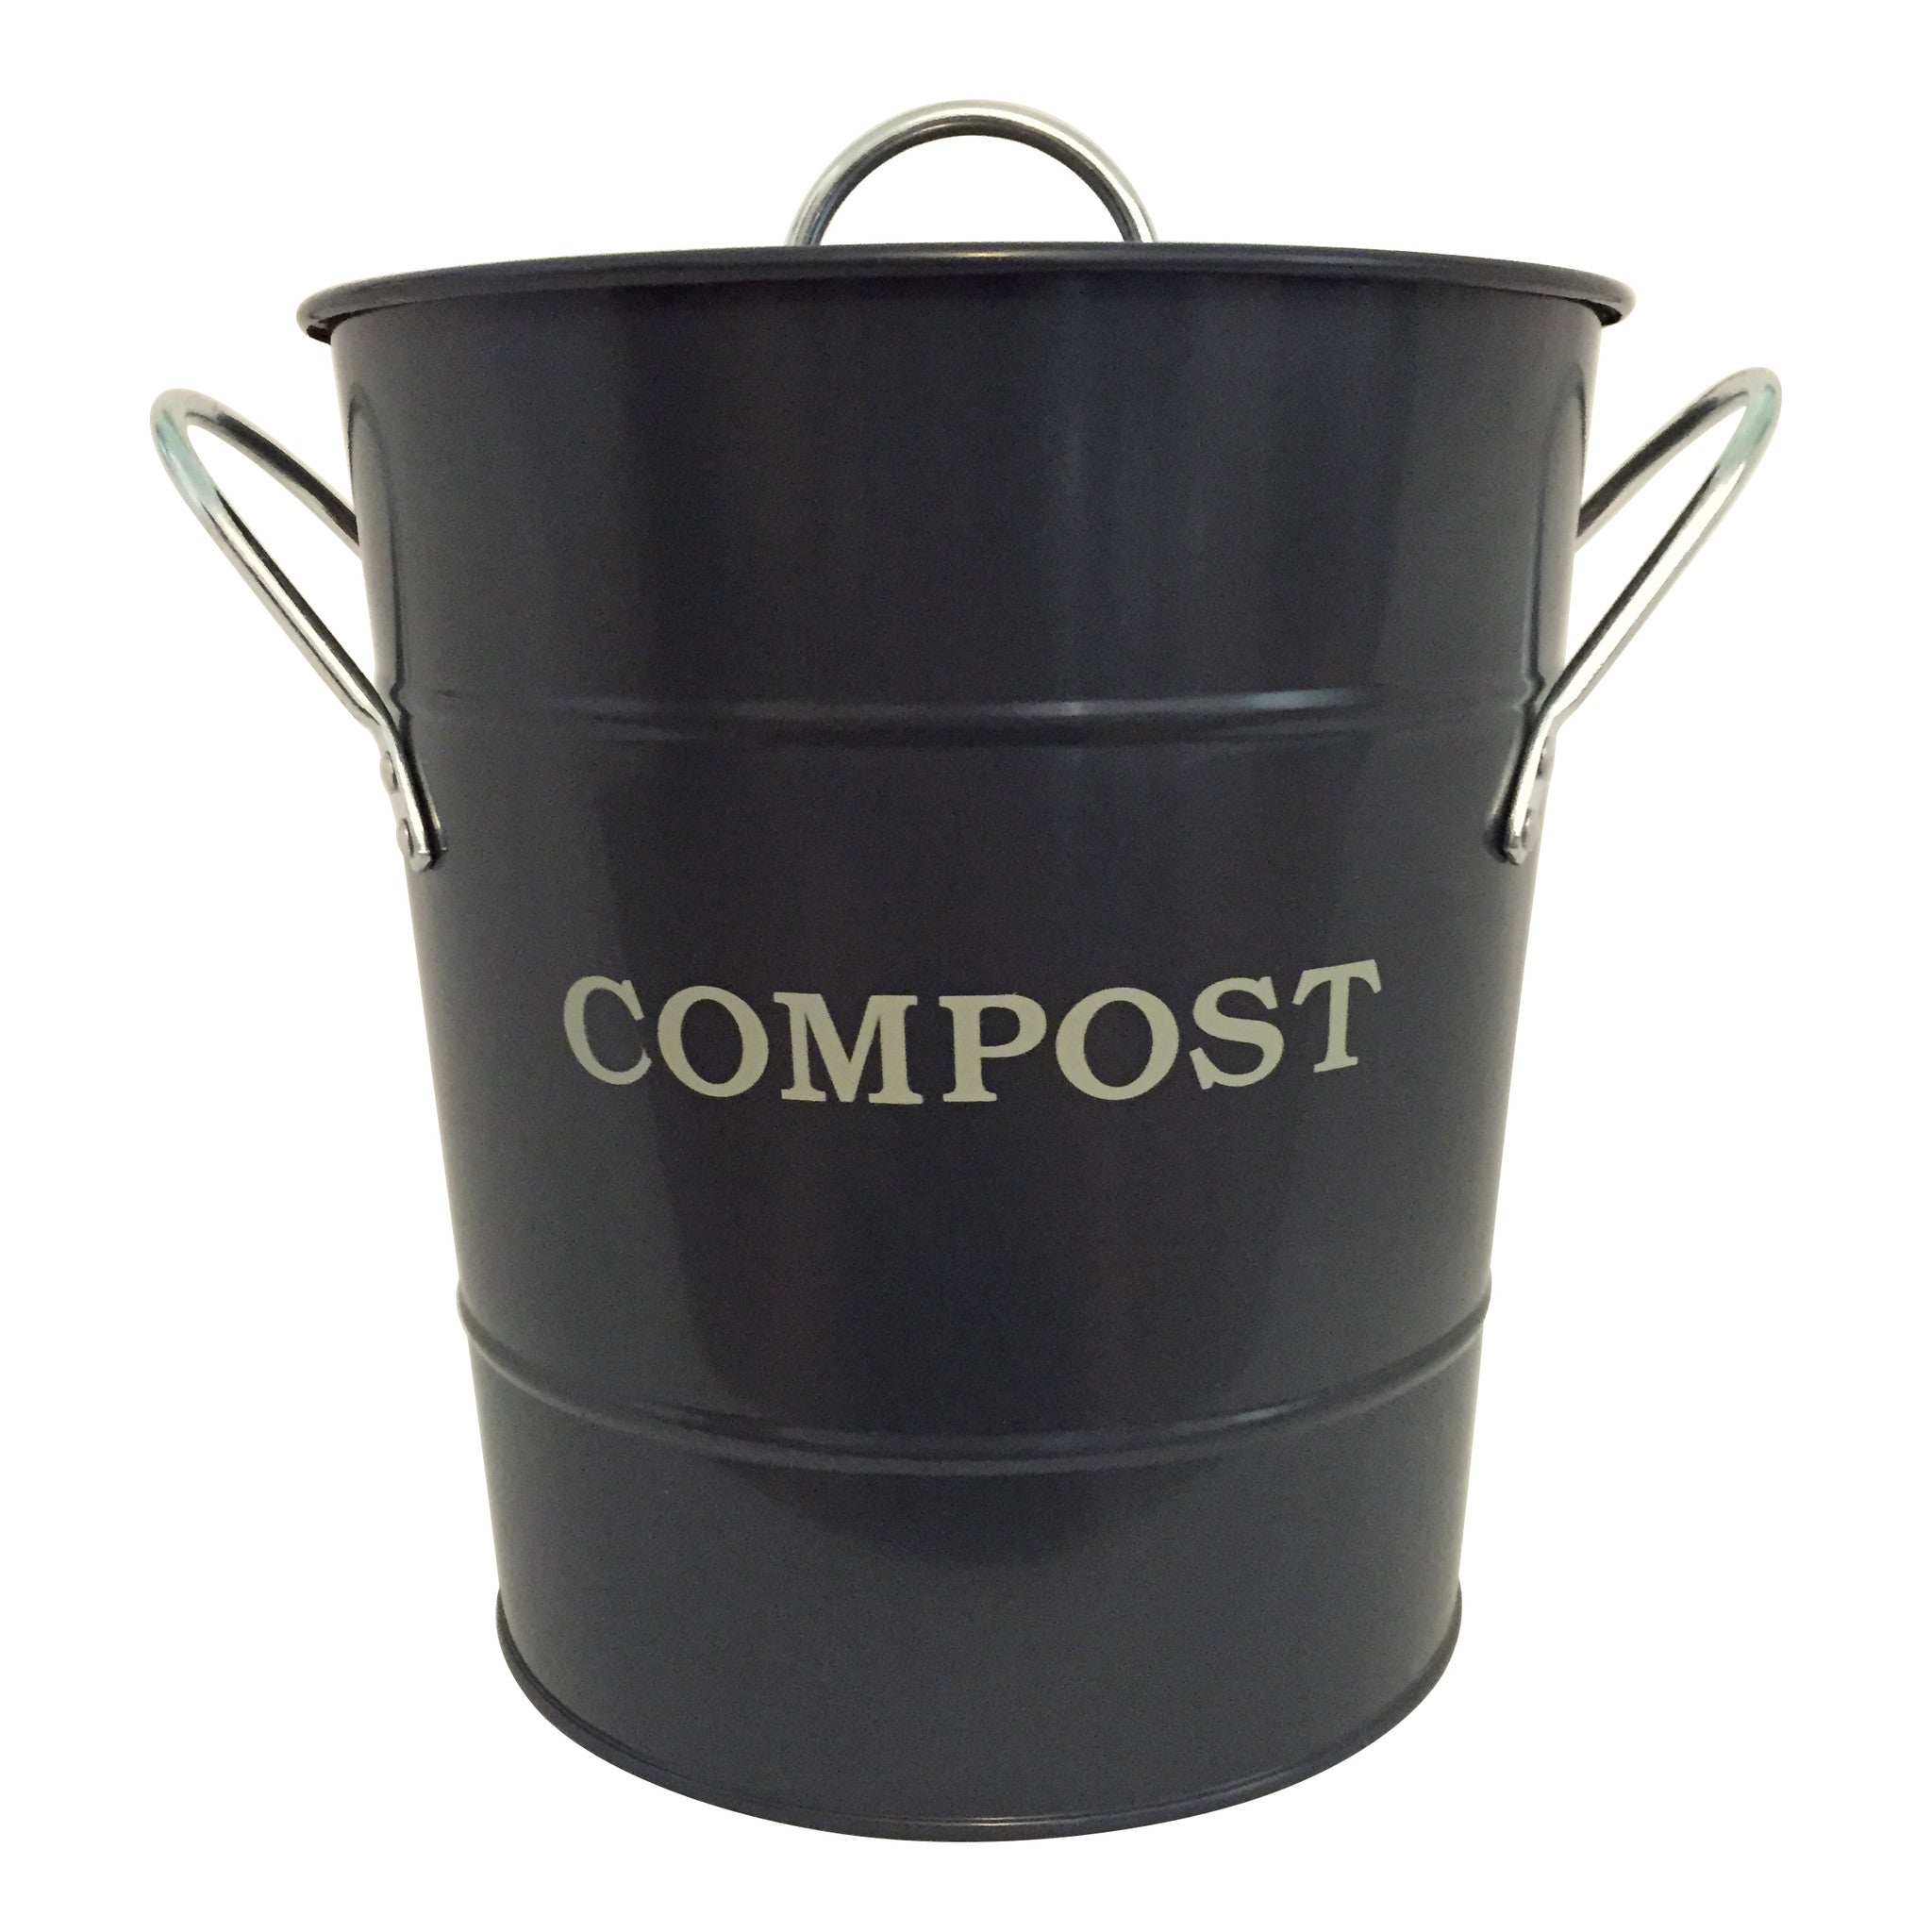 Compost Bucket - Charcoal - The Potting Shed Garden Tools